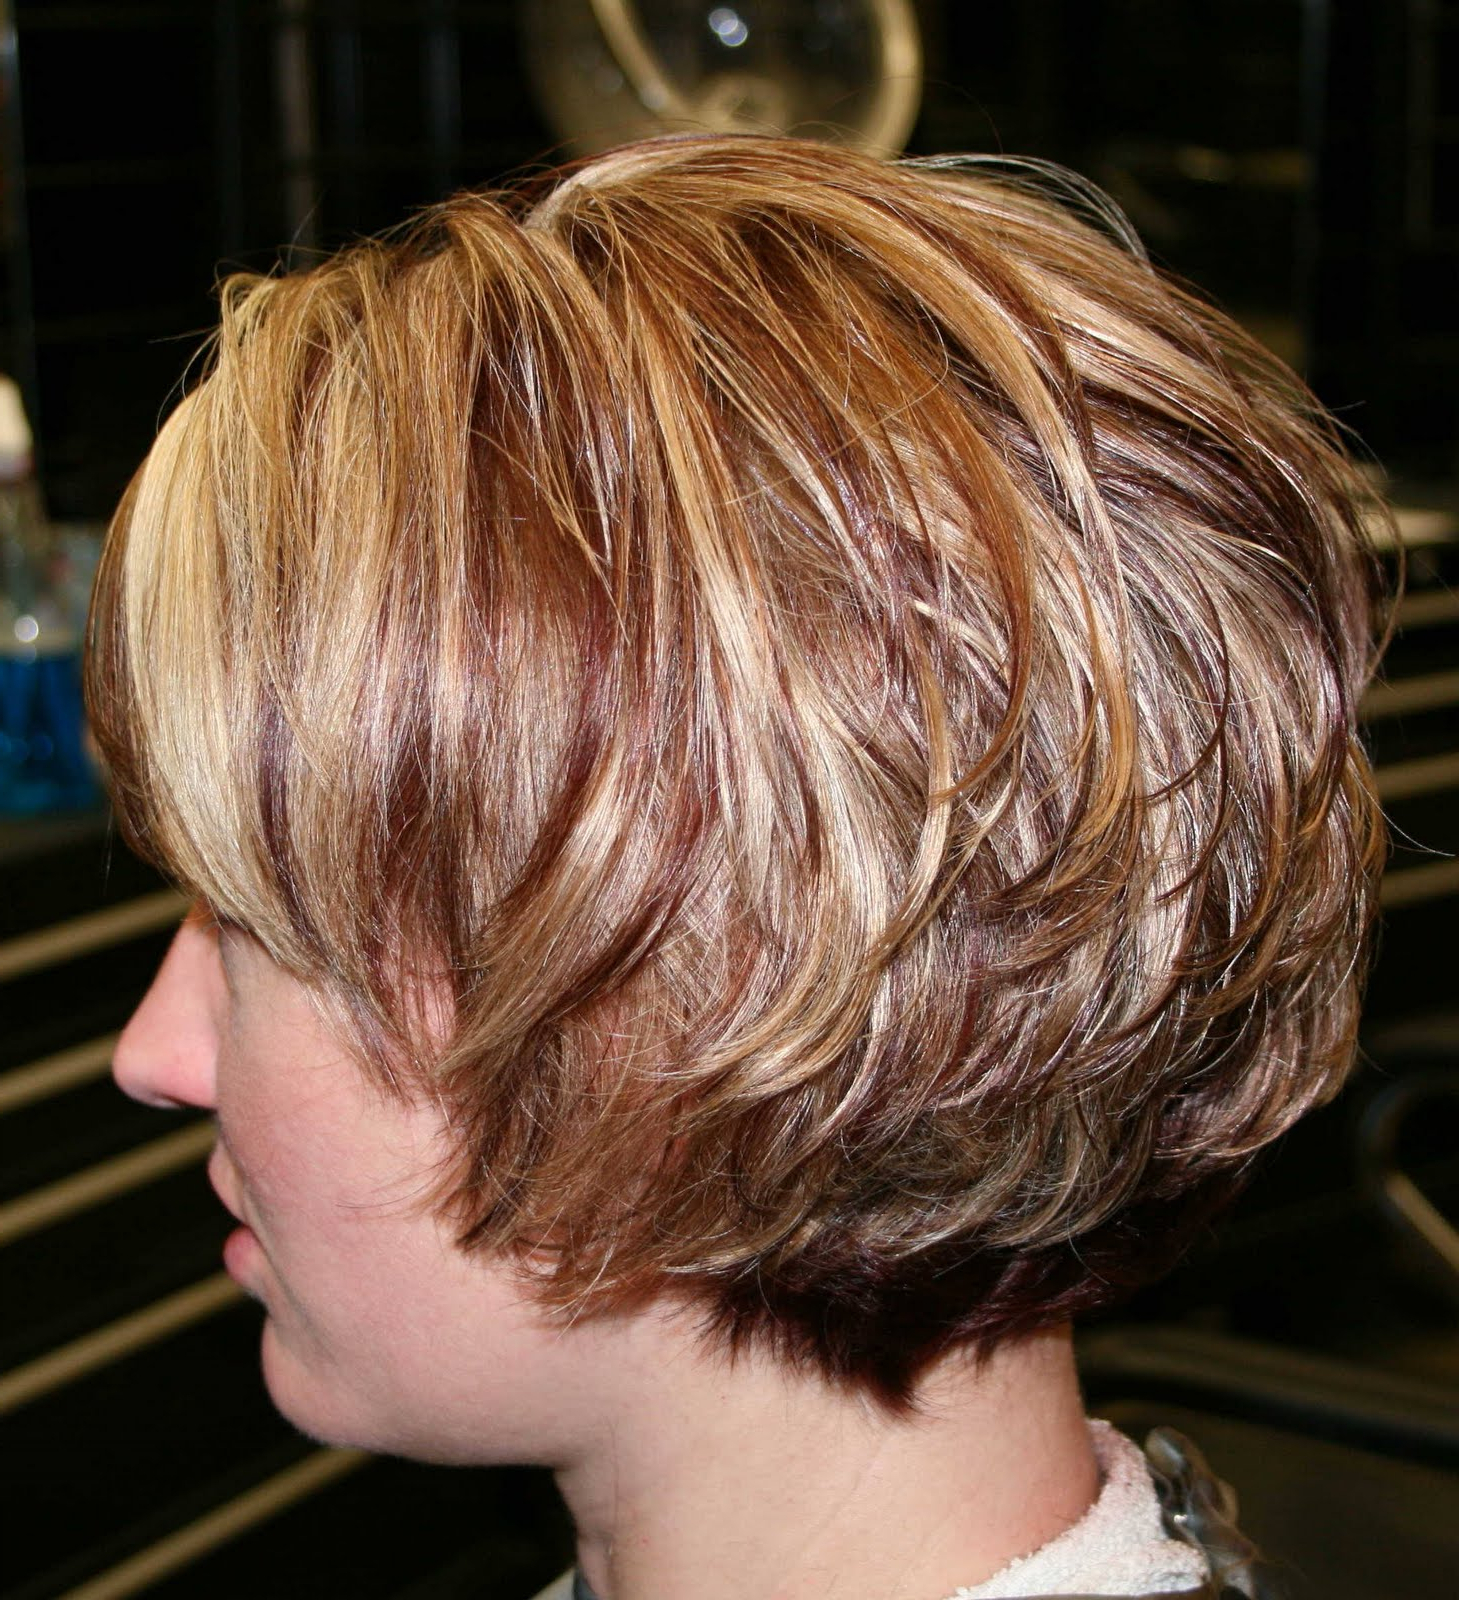 New Haircuts And Hairstyles: Trendy Hairstyles With Modern And Chic In Wavy Sassy Bob Hairstyles (View 14 of 25)